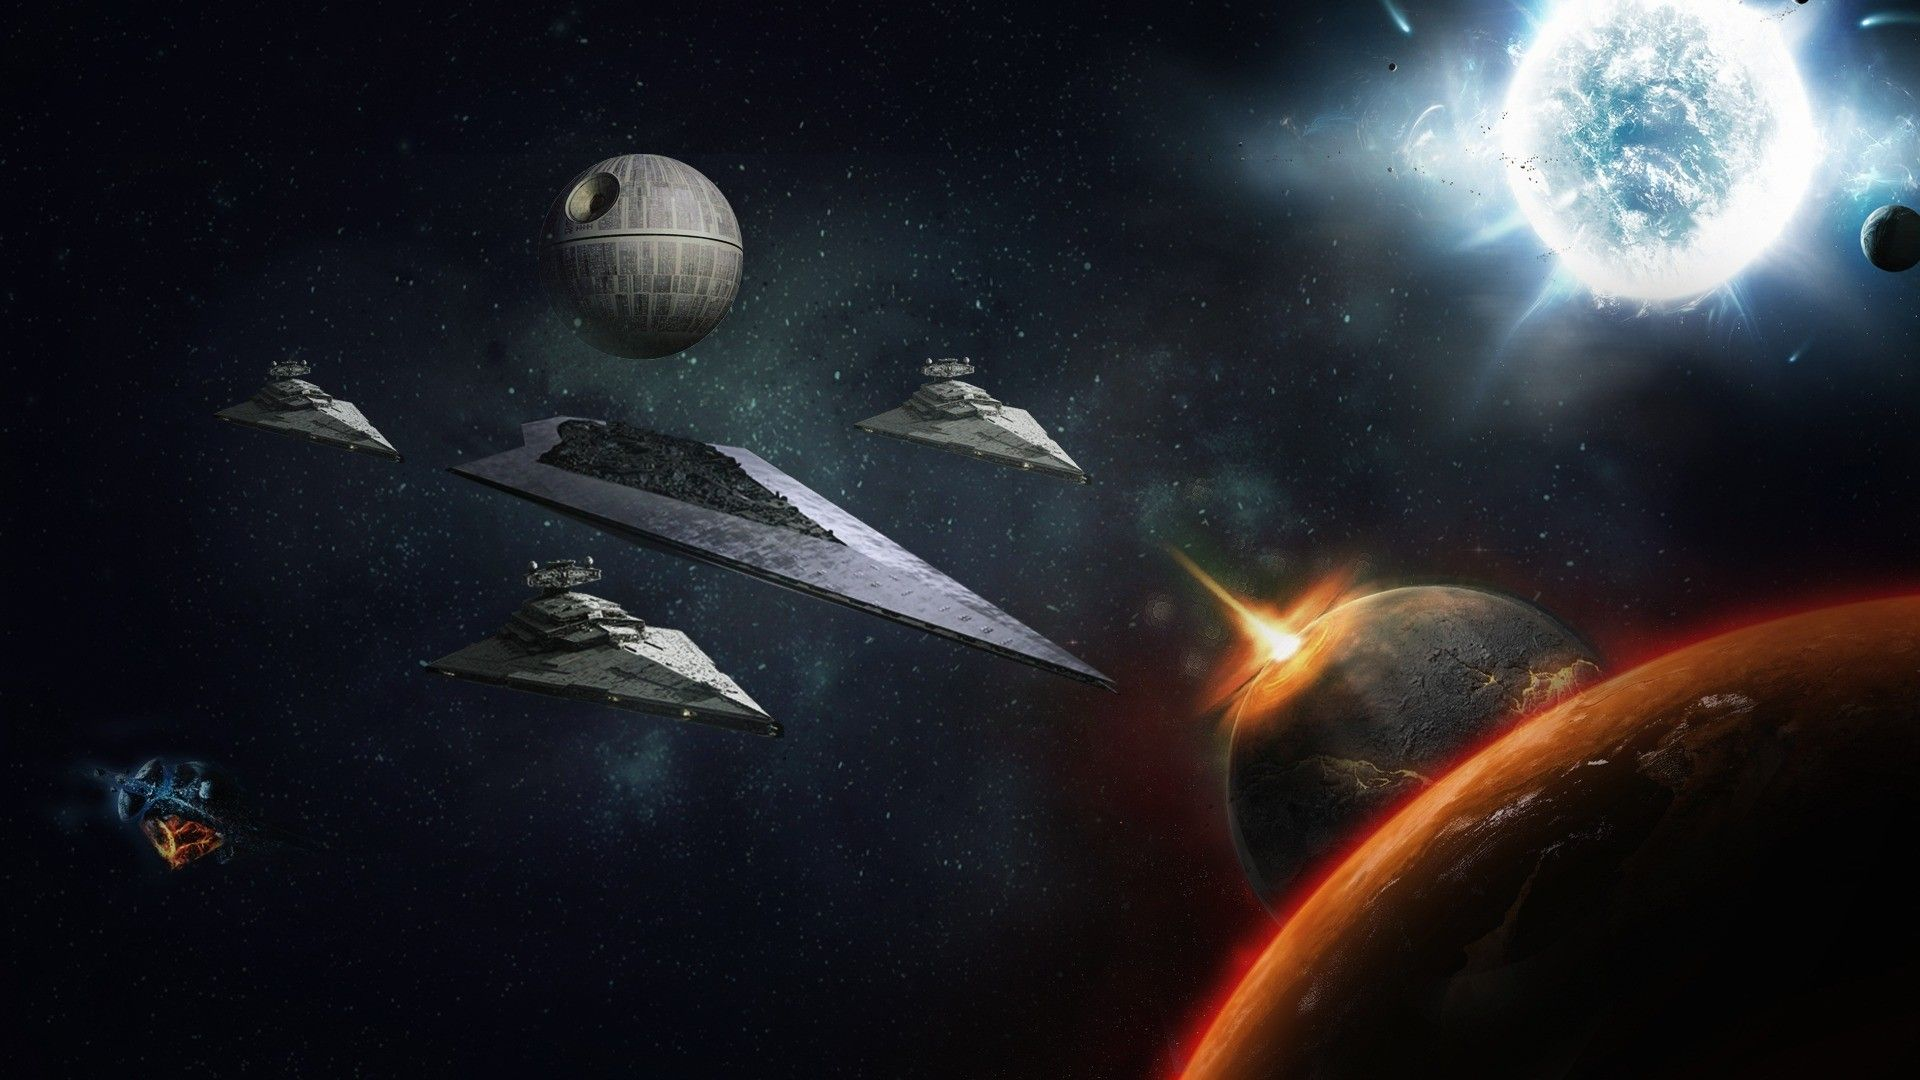 Movie Backgrounds For Star Wars Art Wallpapers 1080x1920px Star